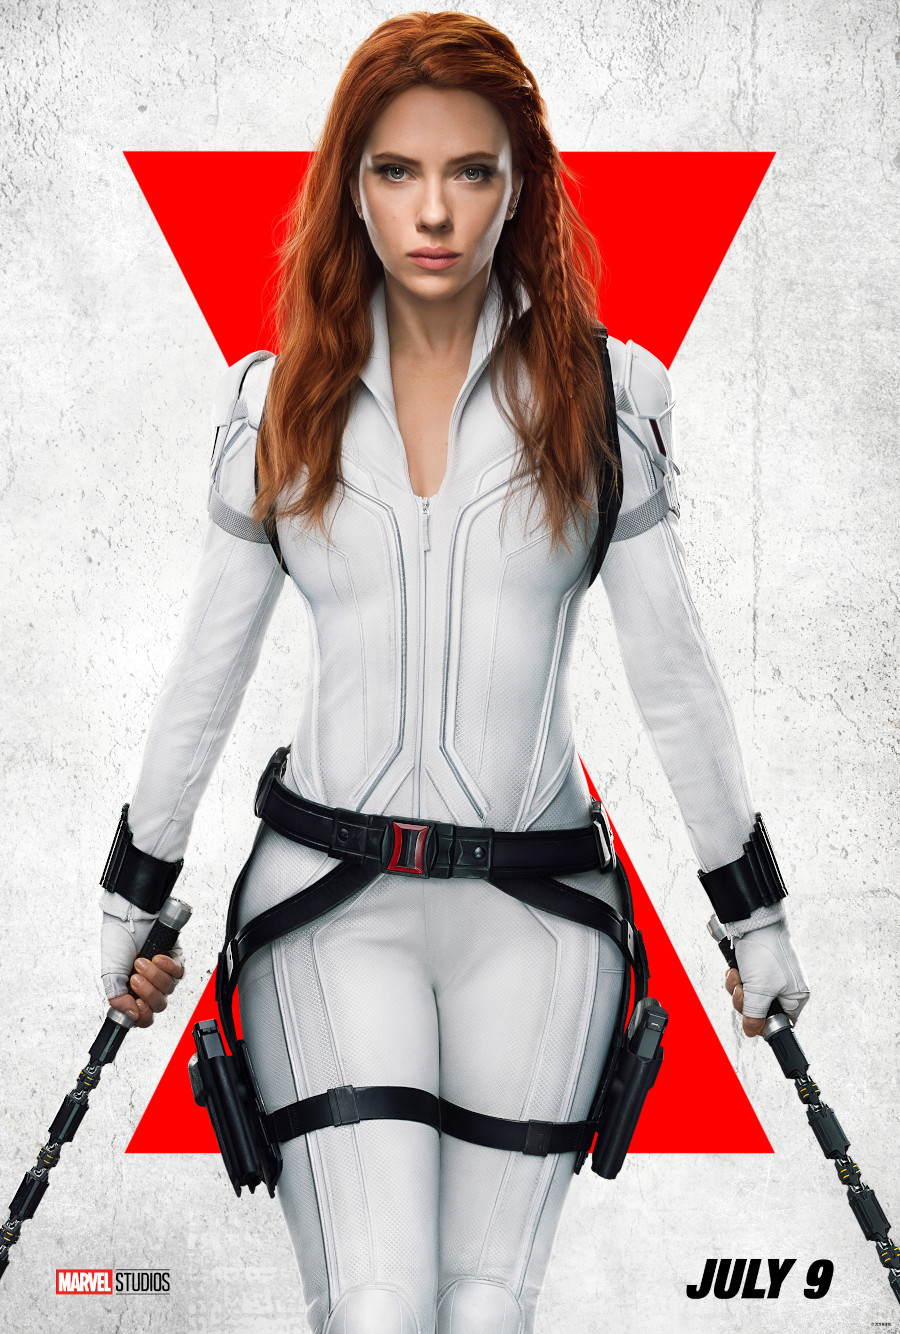 Black Widow Disney Plus posters